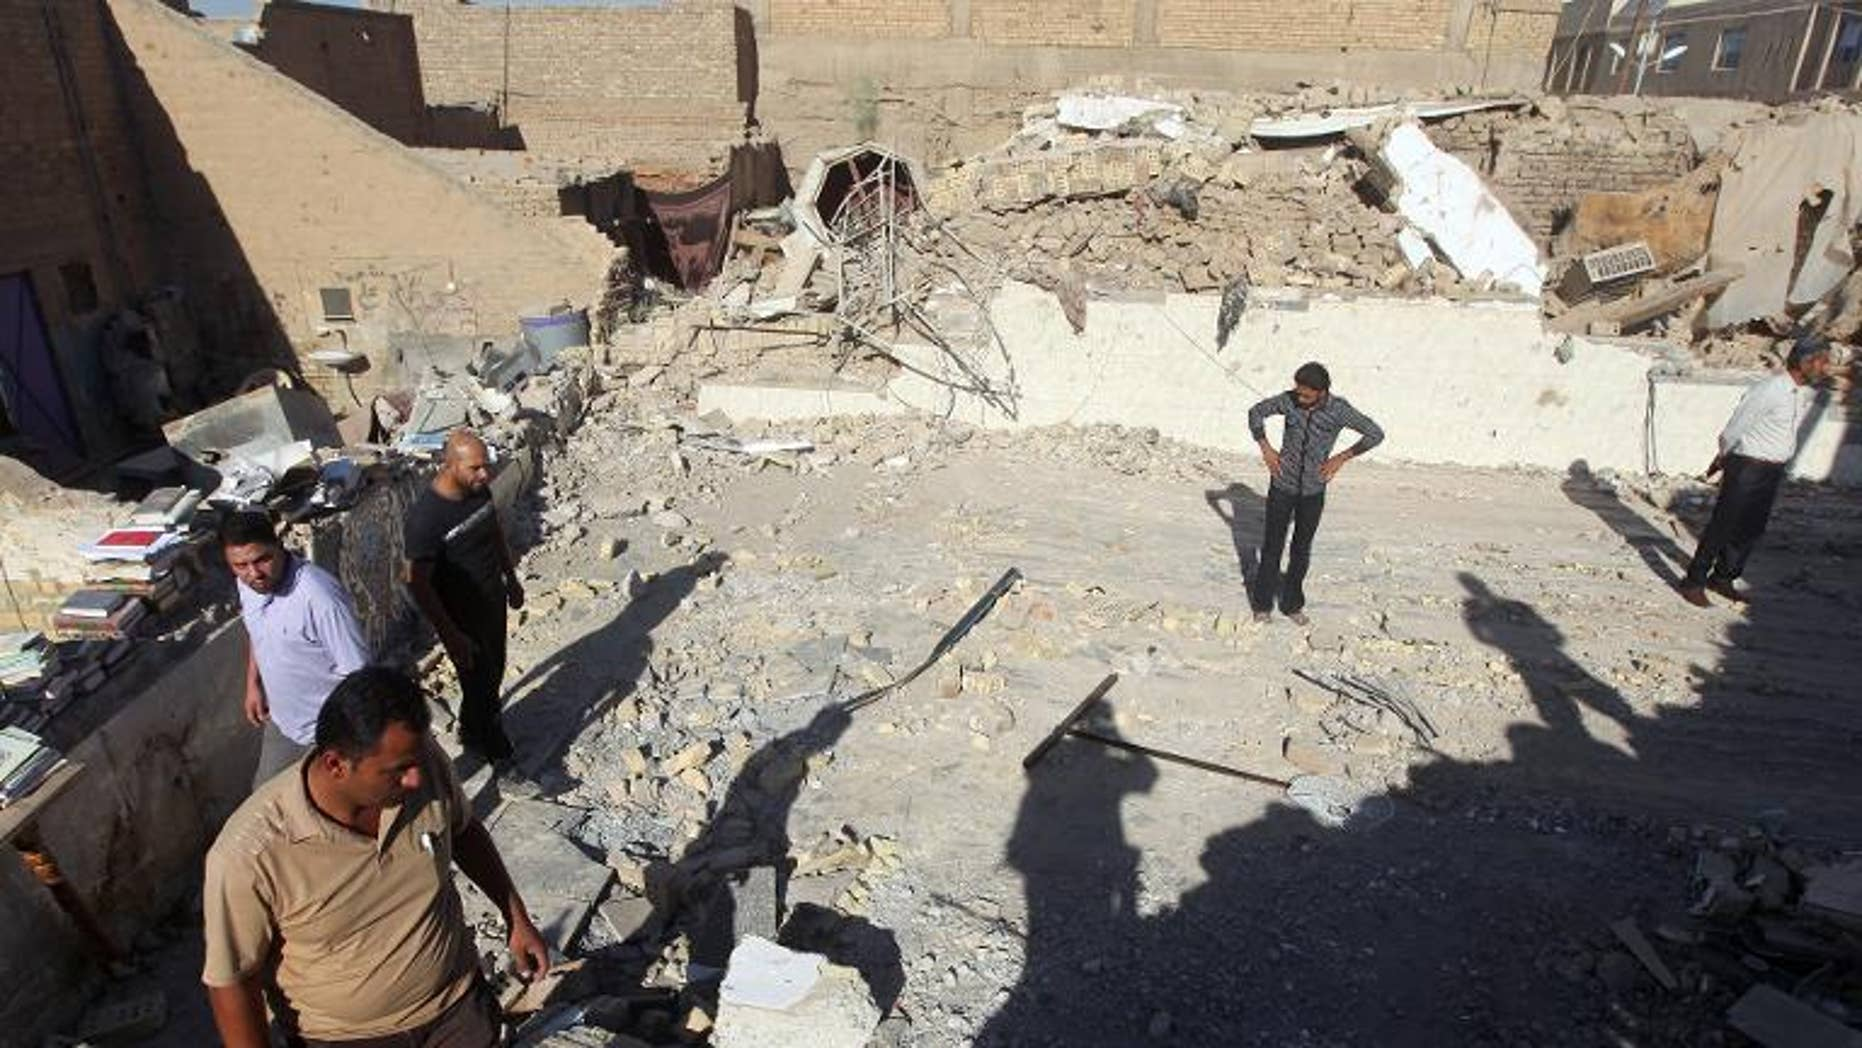 Iraqis inspect the scene following an explosion at the Al-Hussein mosque south of Baghdad, on September 30, 2013